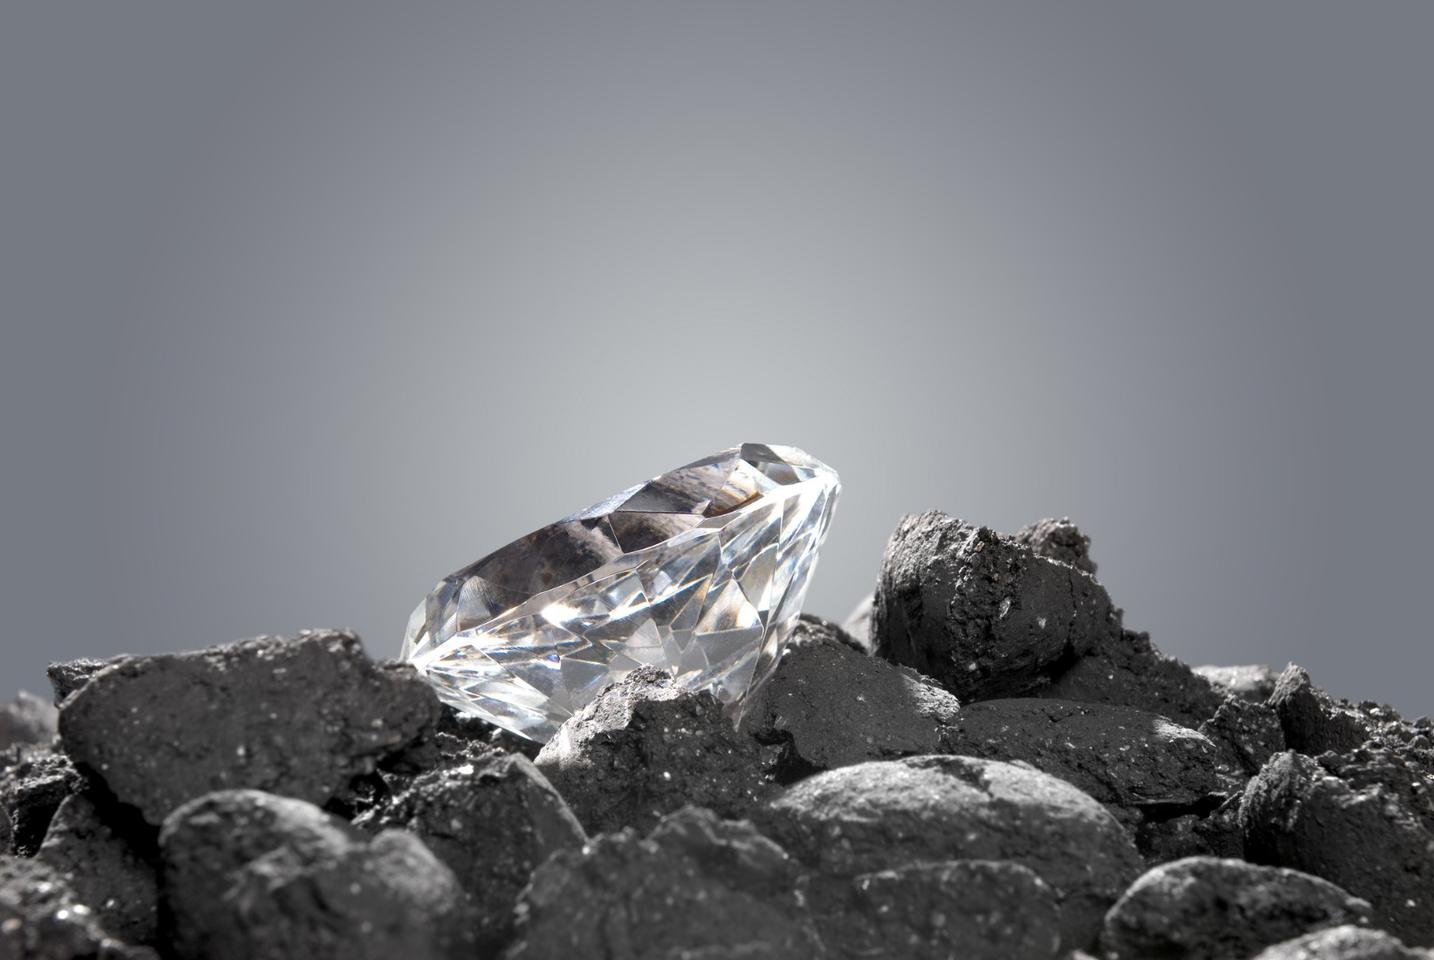 new study suggests there may be 1,000 times more diamonds in the Earth's interiorthan previously believed